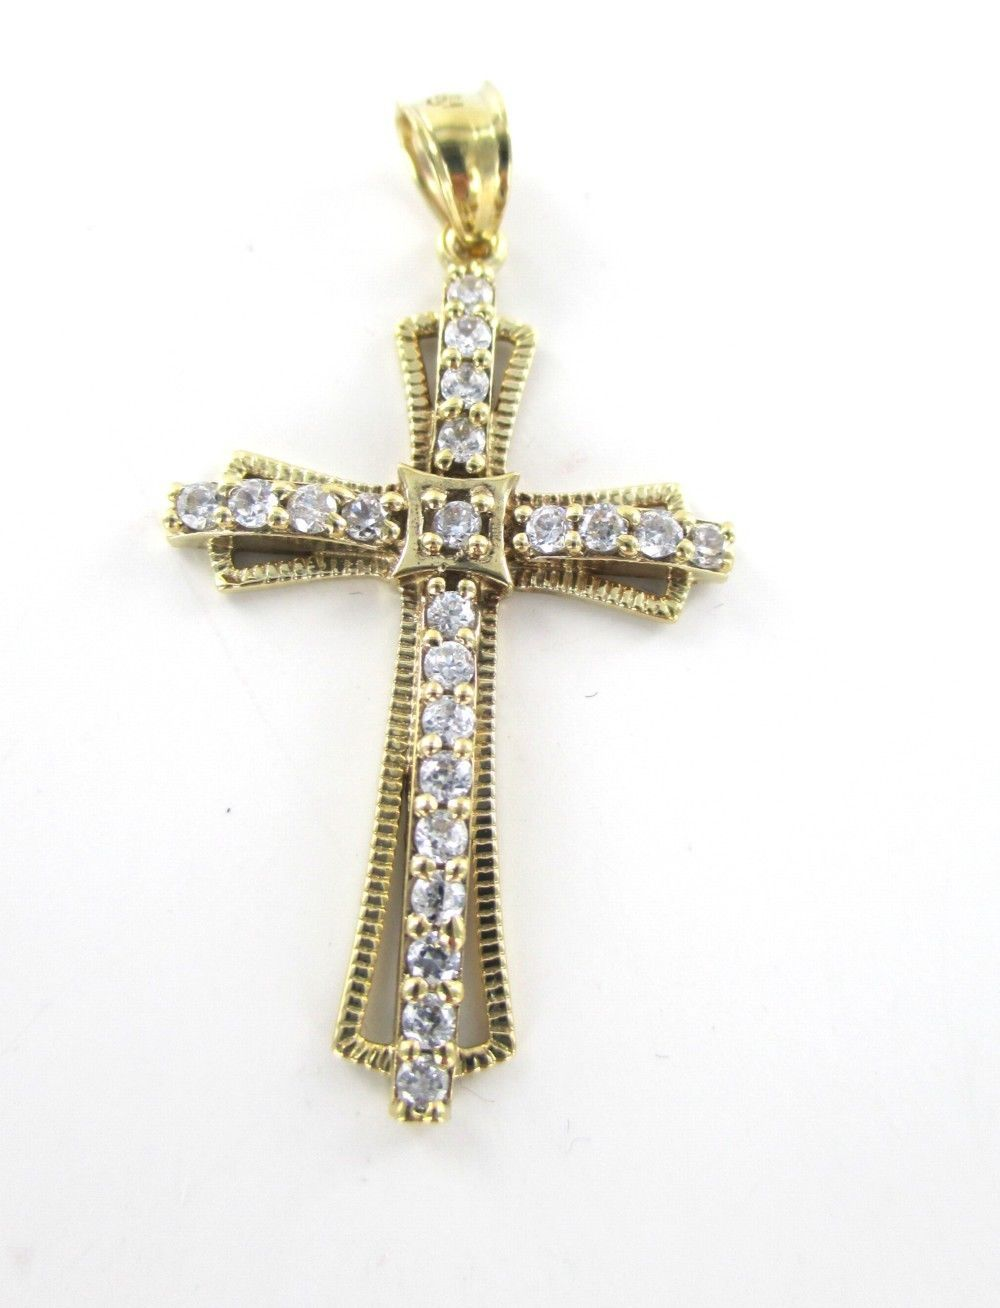 10KT SOLID YELLOW GOLD PENDANT CROSS WHITE STONES  CHARM RELIGIOUS990055772